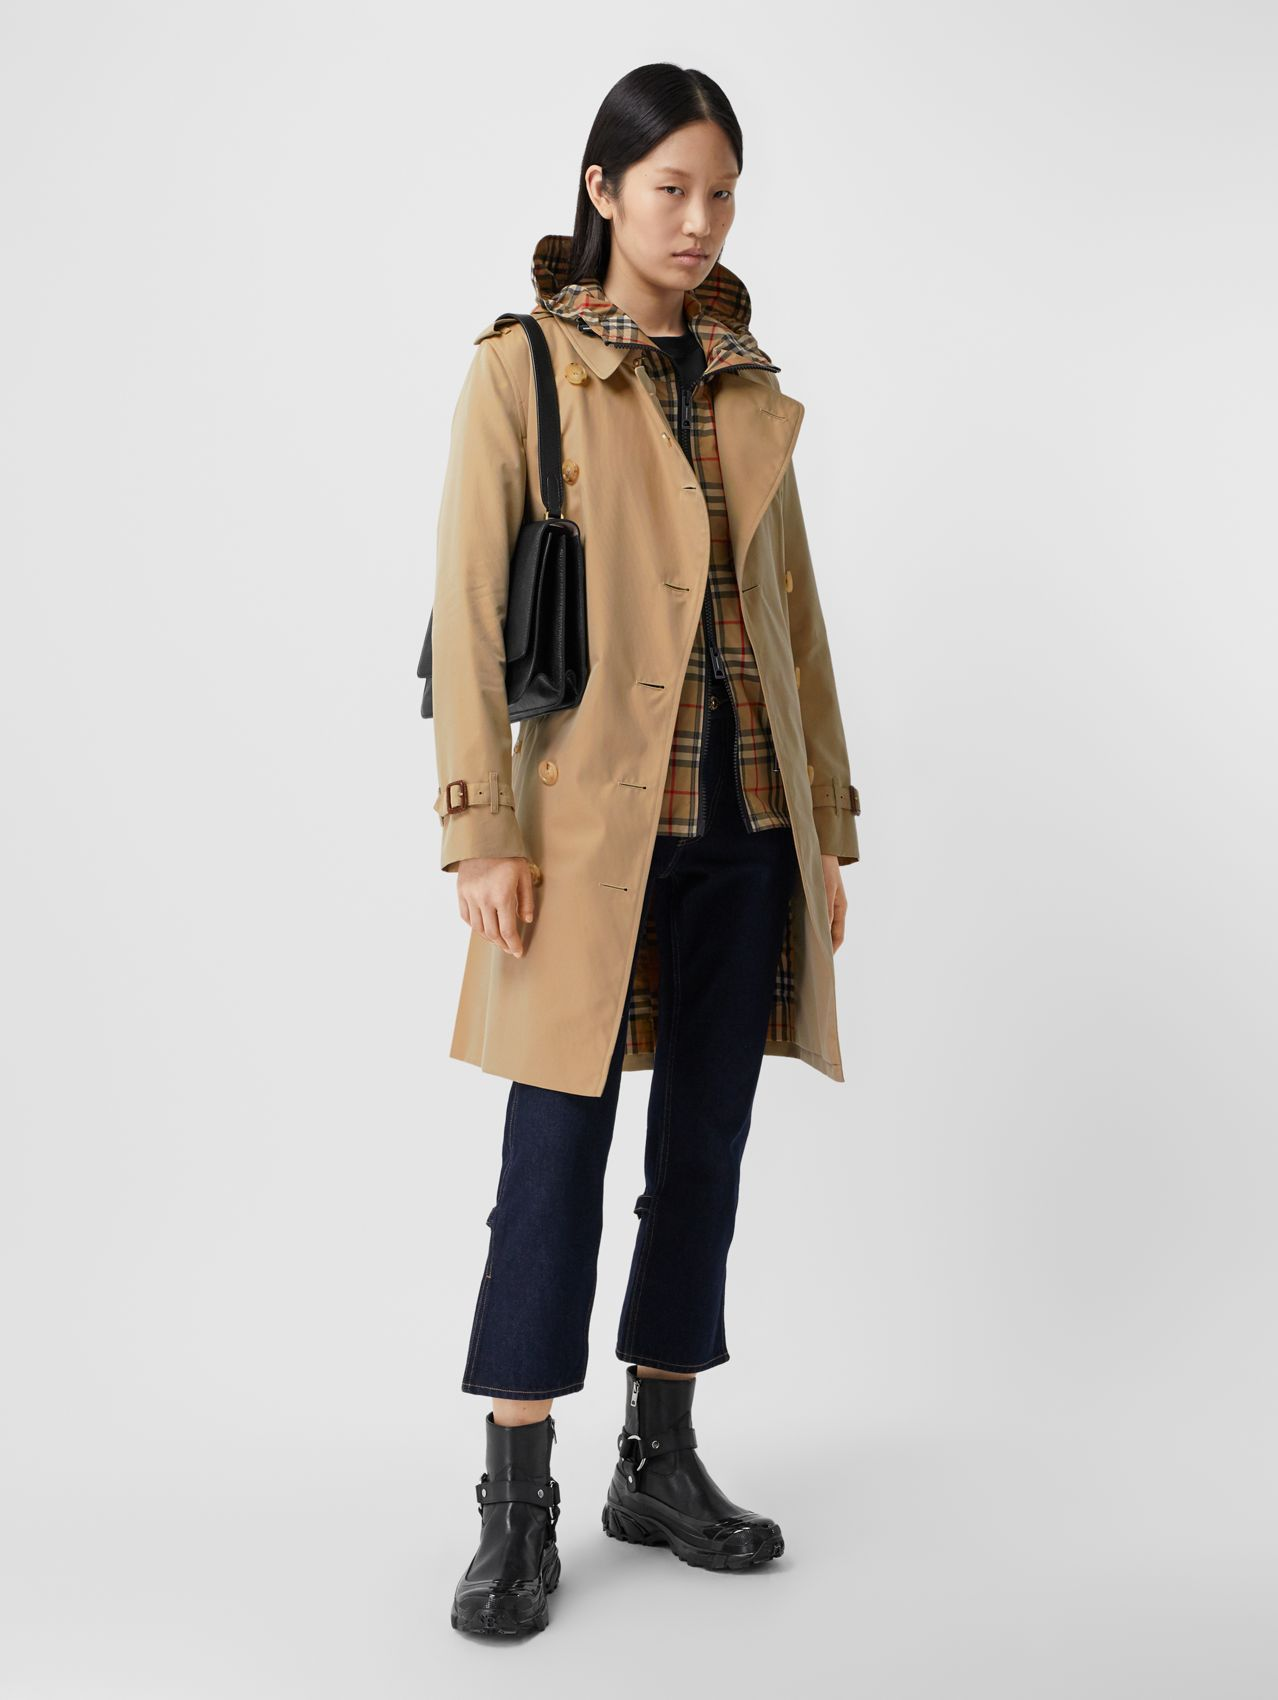 The Mid-length Kensington Heritage Trench Coat in Honey